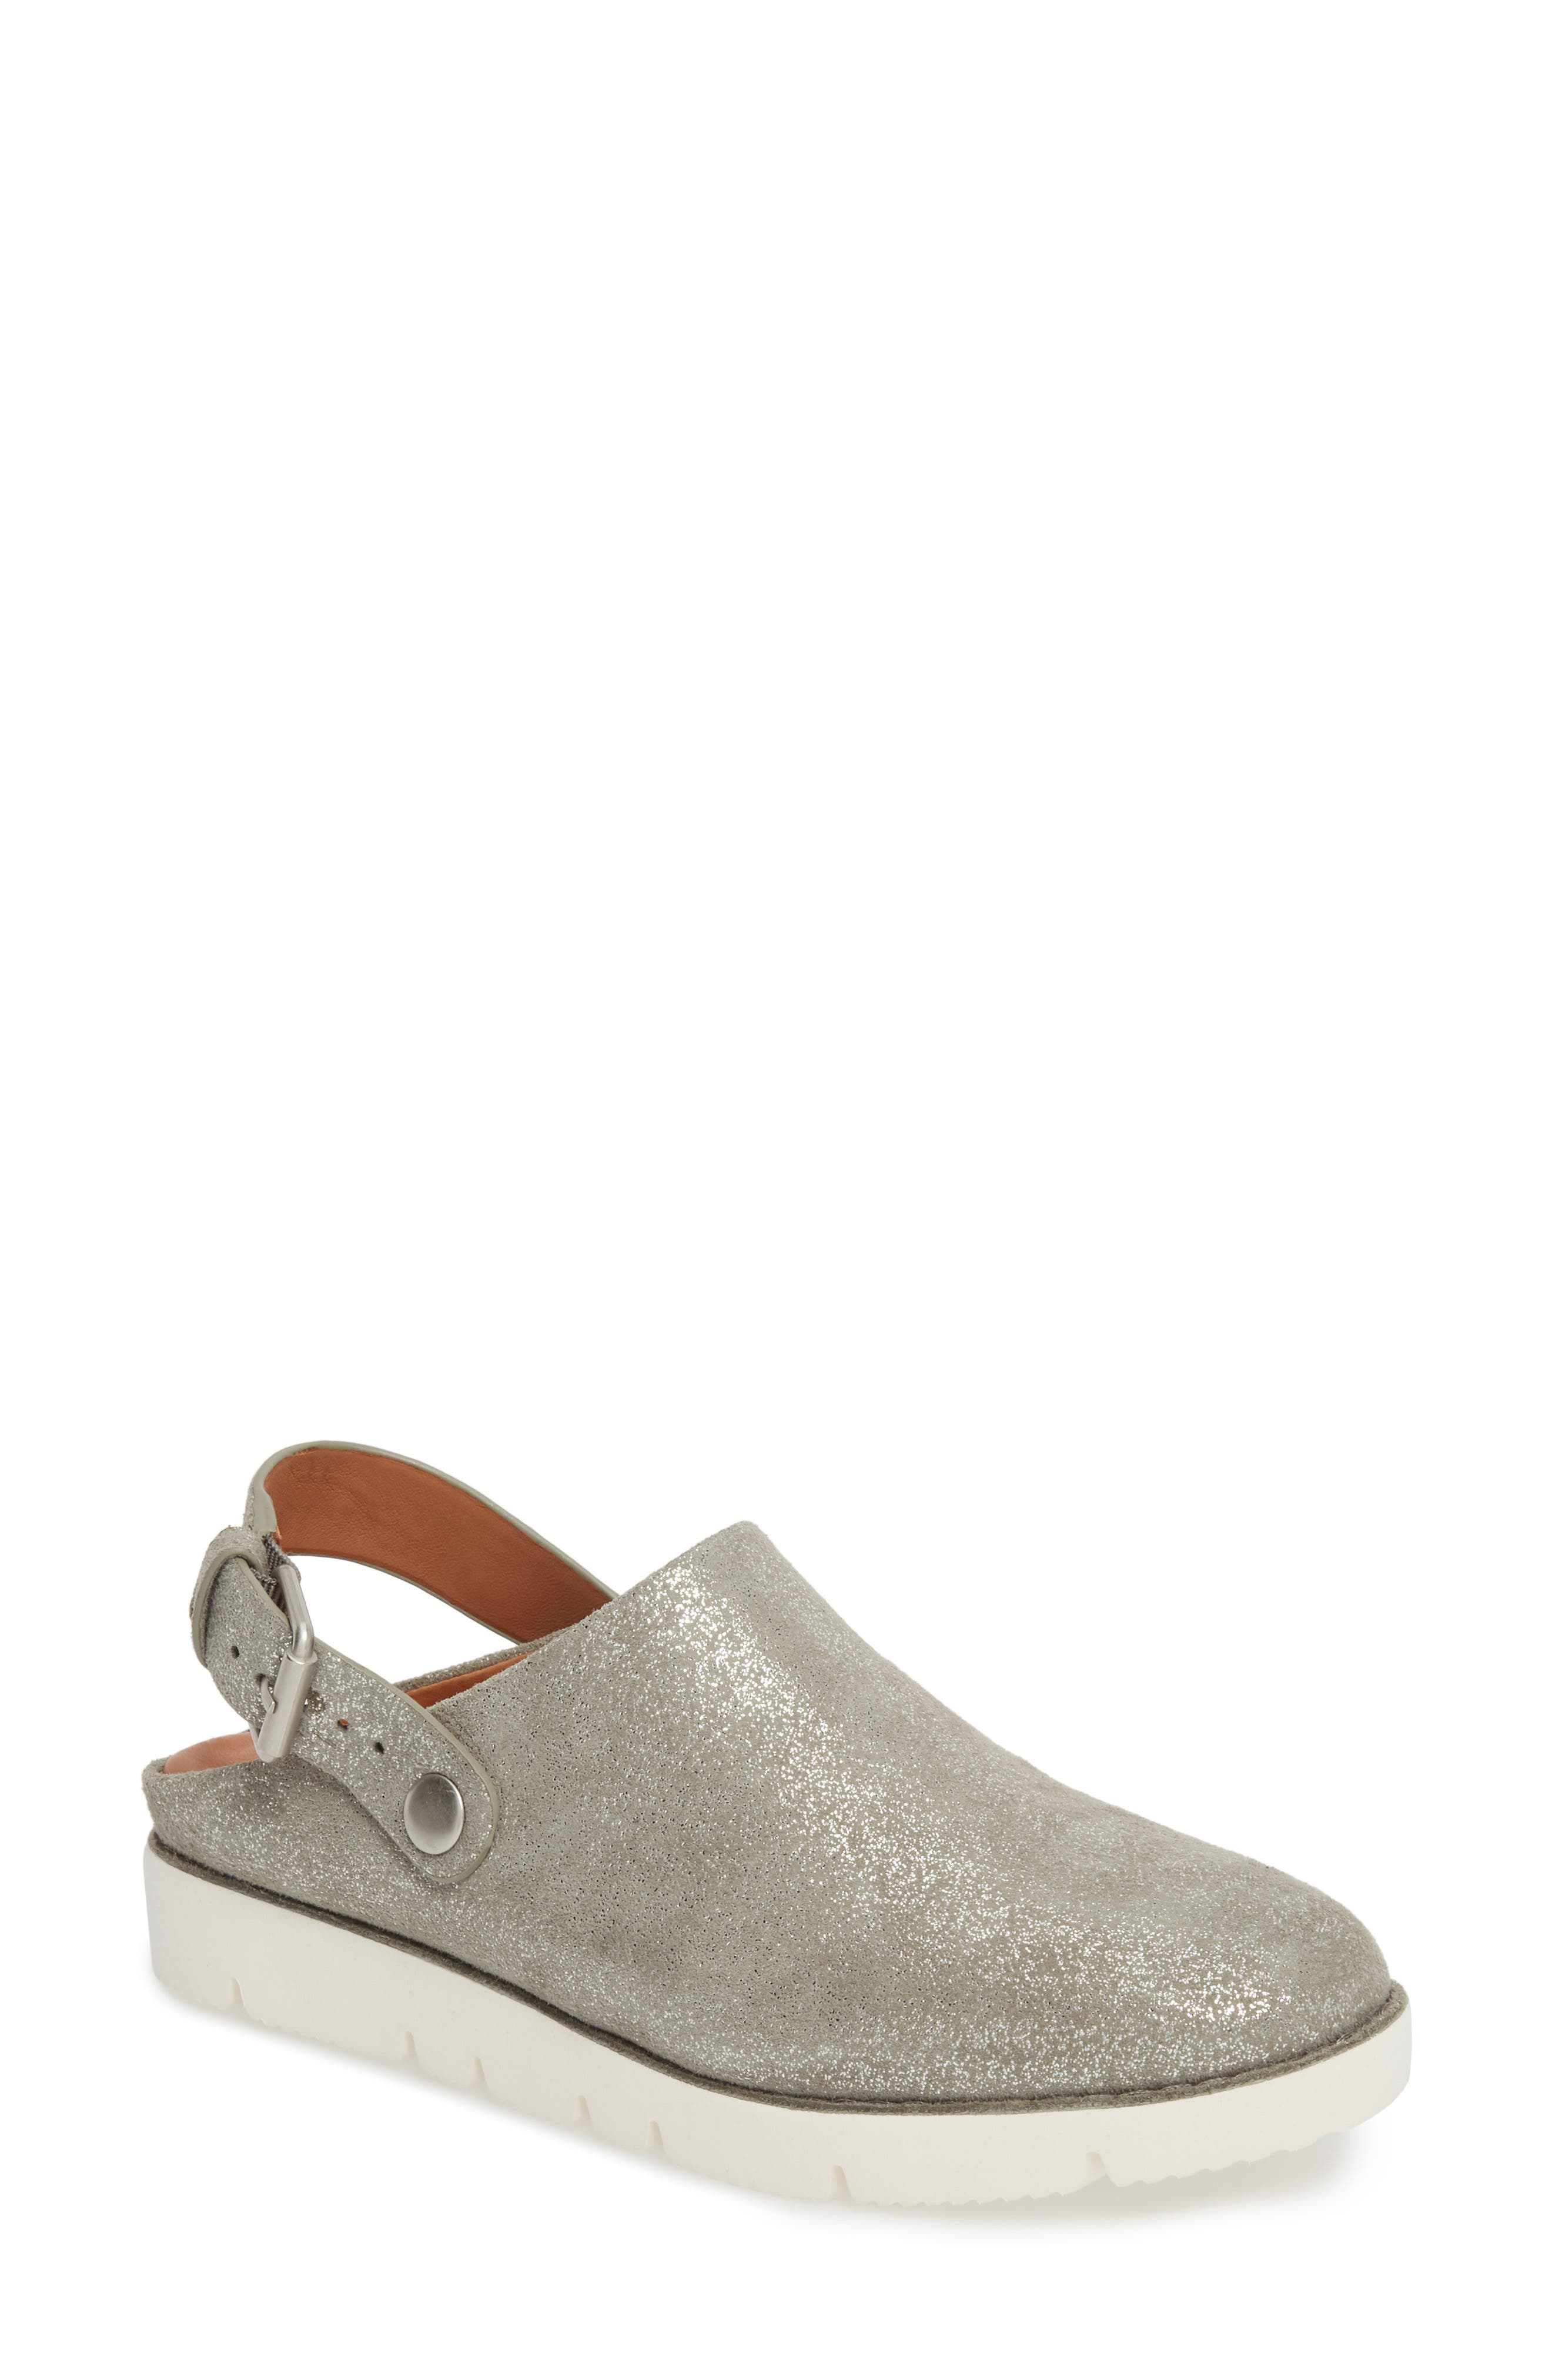 GENTLE SOULS BY KENNETH COLE, Esther Convertible Wedge, Main thumbnail 1, color, LIGHT PEWTER METALLIC LEATHER